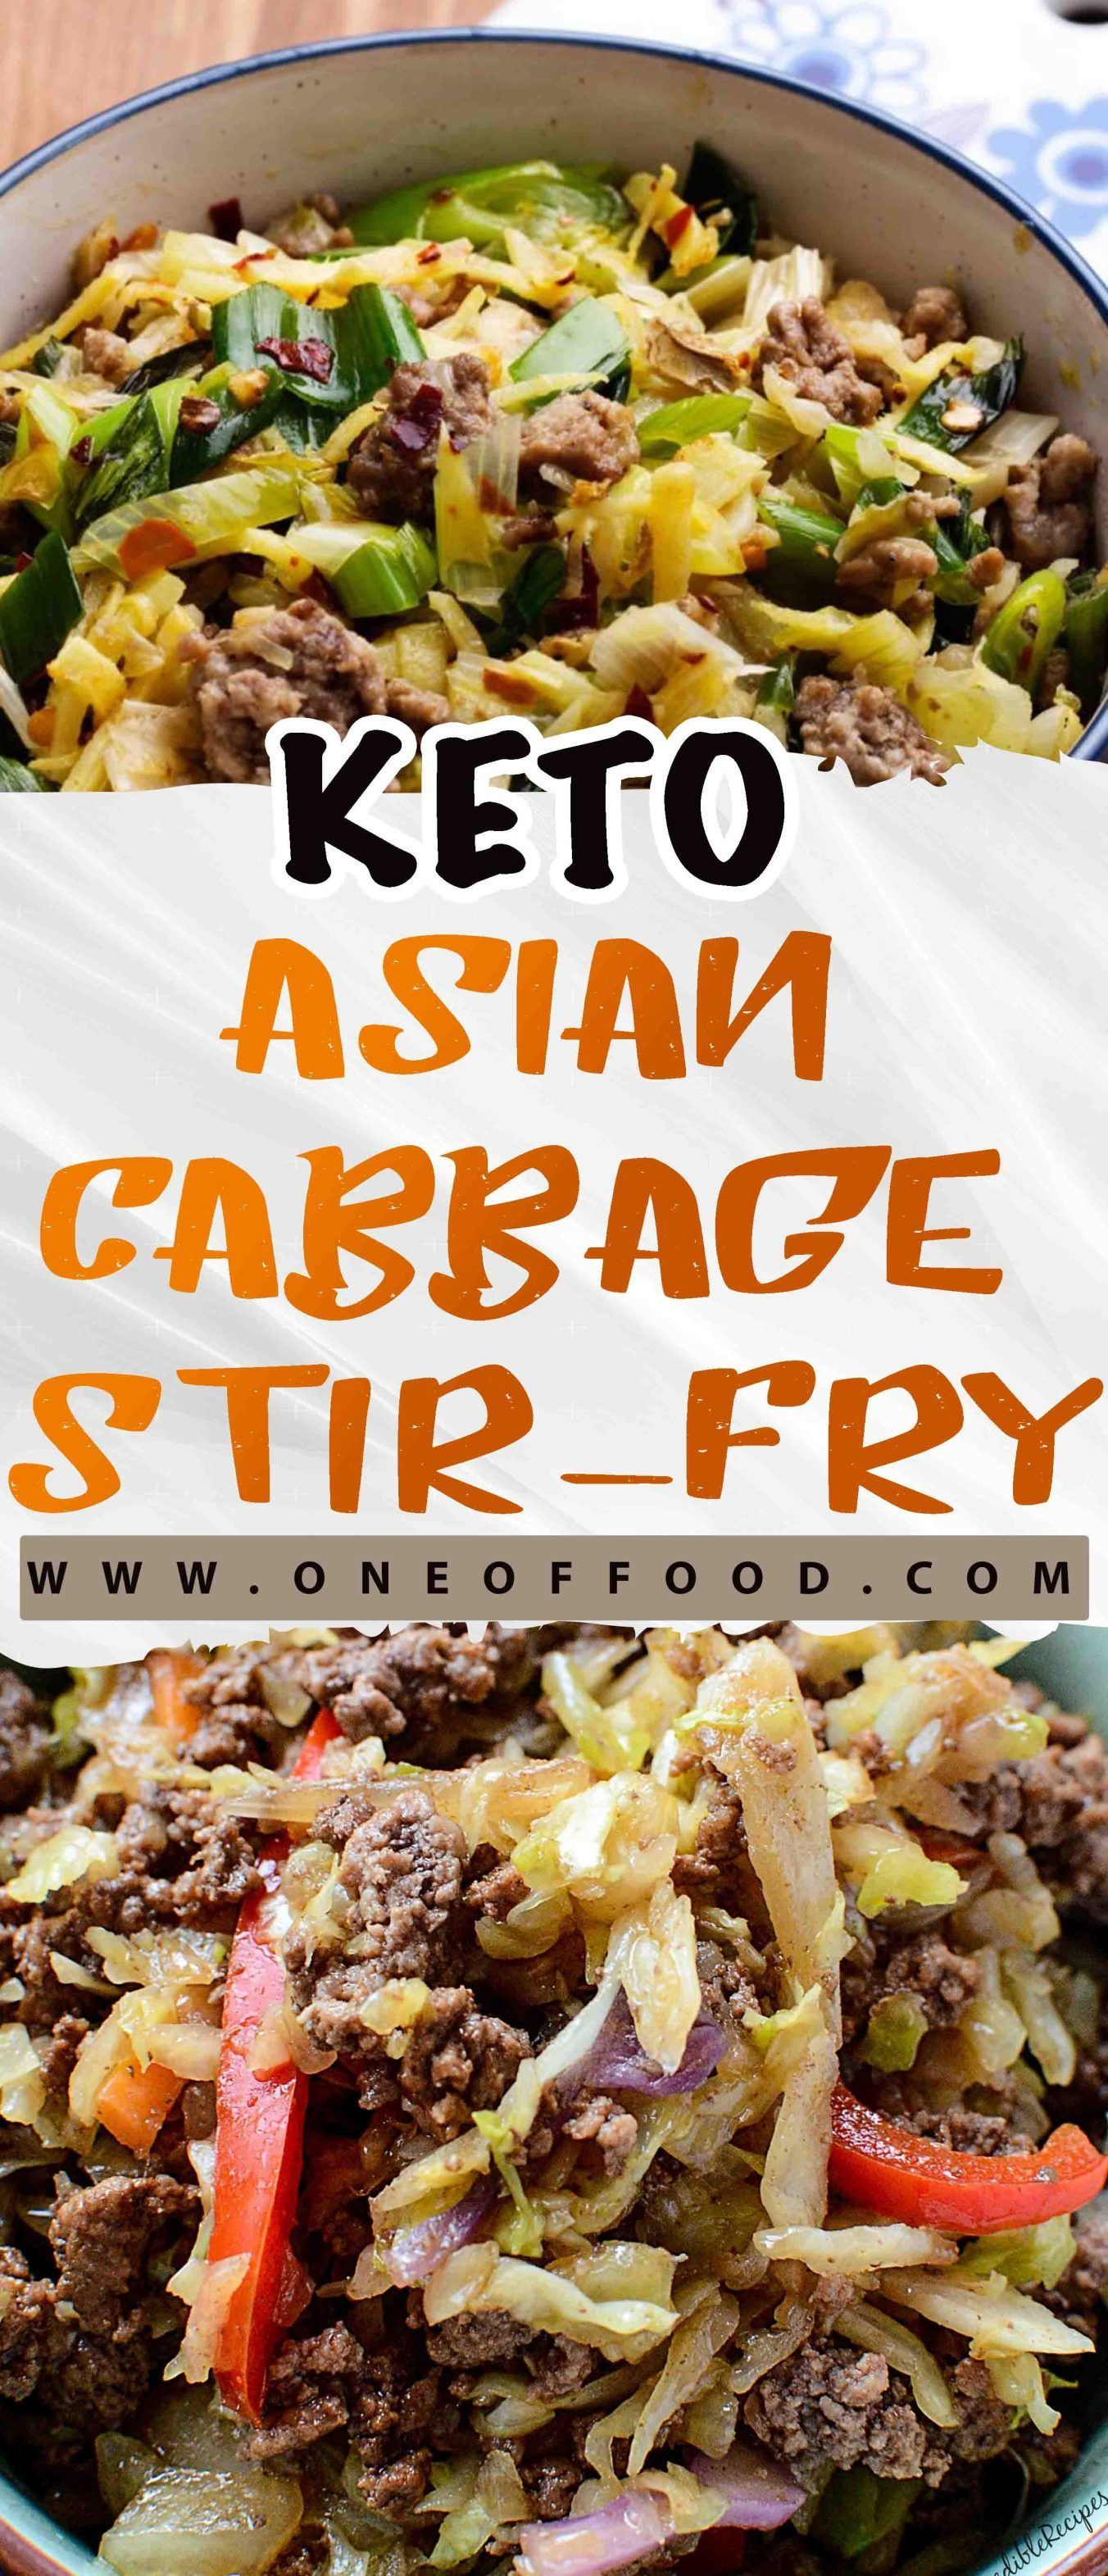 Keto Asian Cabbage Stir-Fry – One of food #cabbagestirfry Keto Asian Cabbage Stir-Fry – One of food #cabbagestirfry